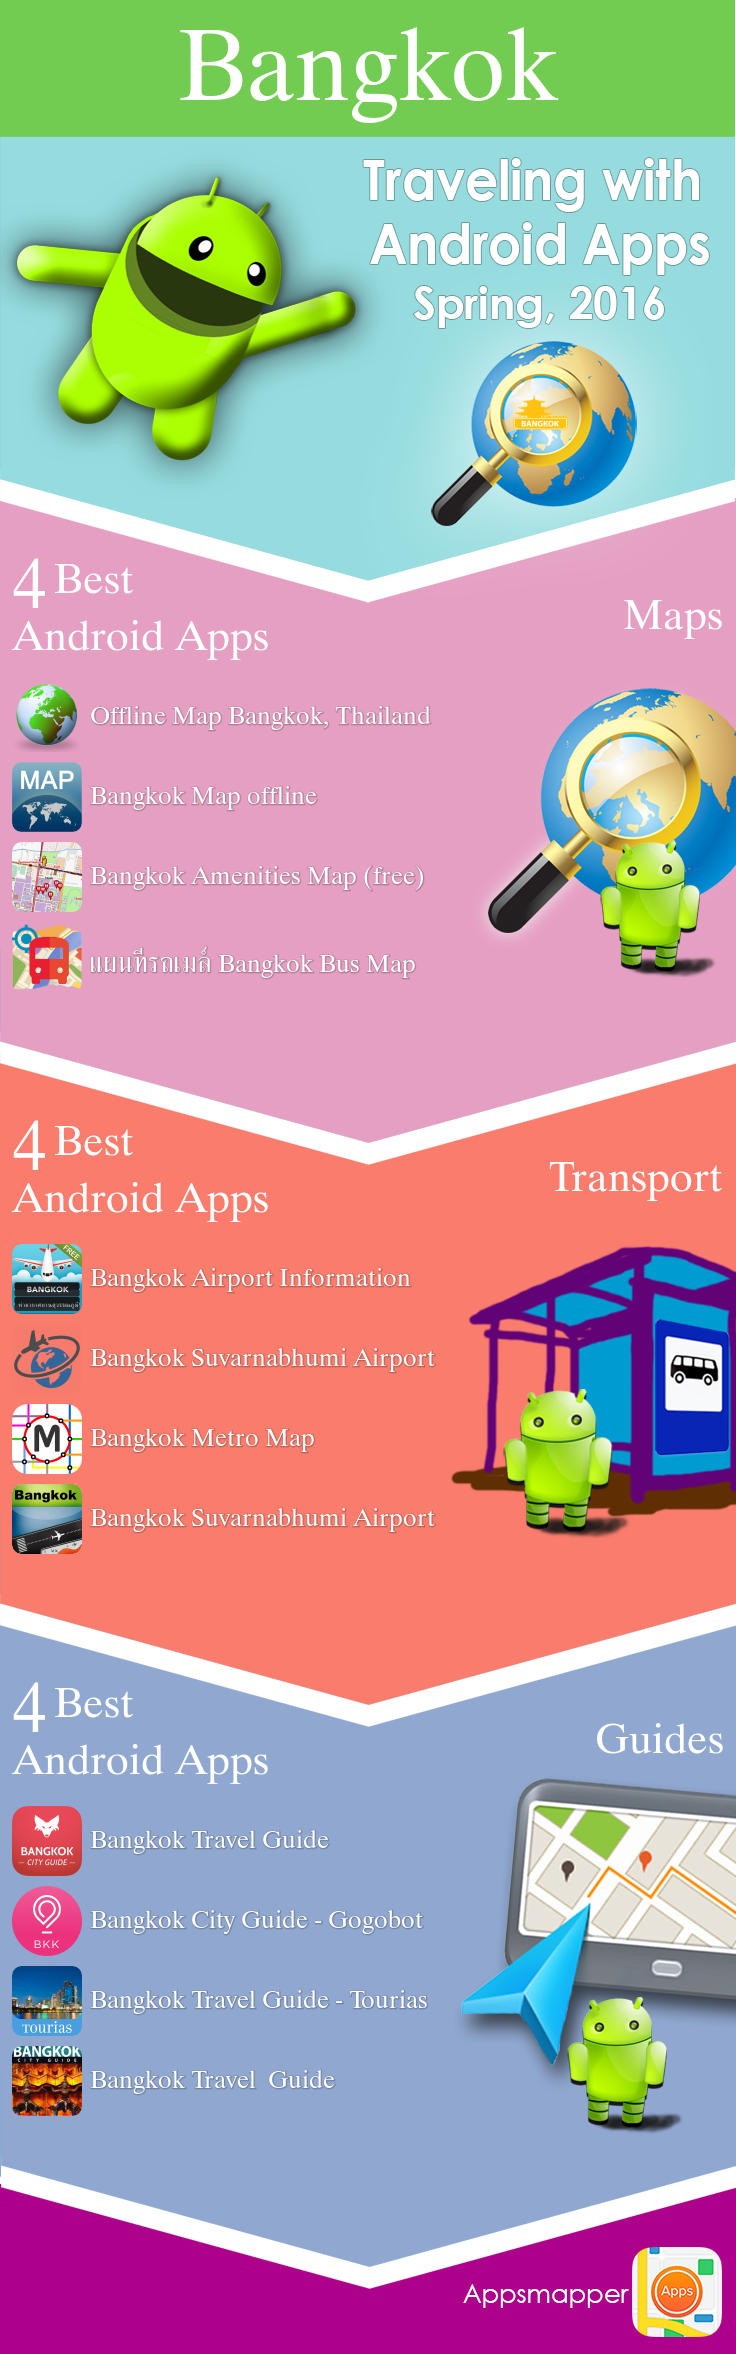 Bangkok Android apps Travel Guides, Maps, Transportation